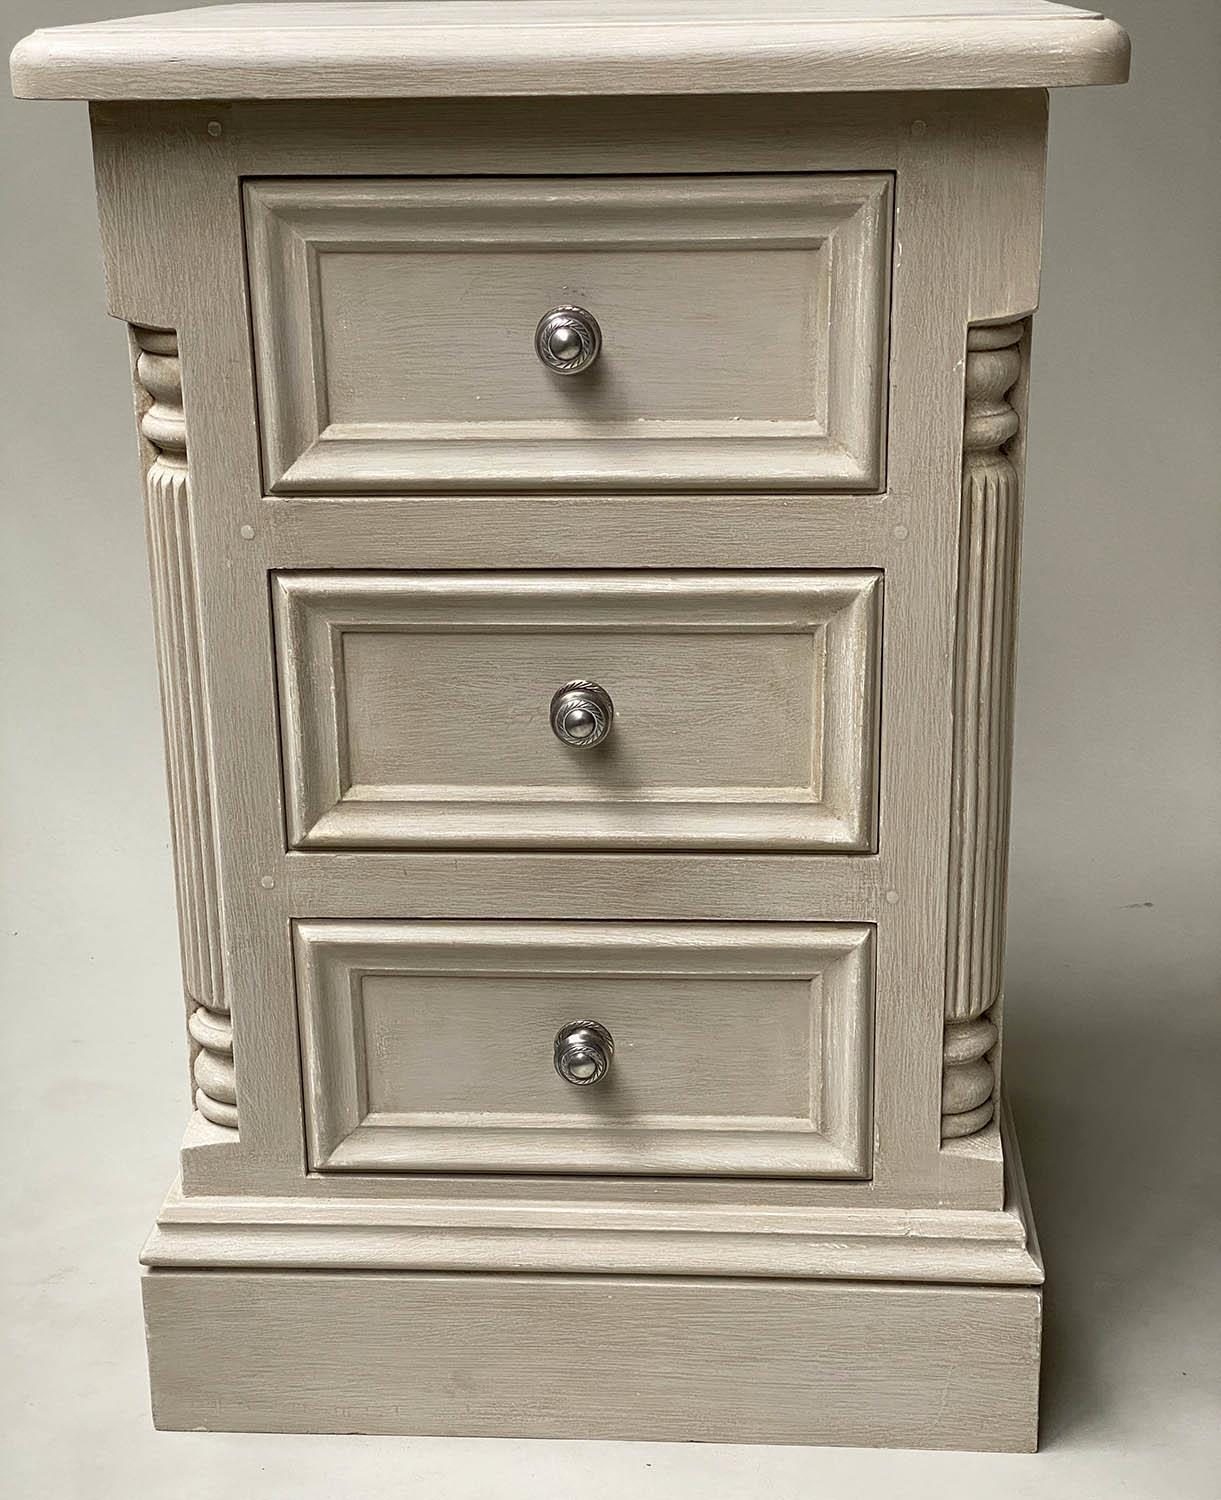 BEDSIDE CHESTS, a pair, French style grey painted, each with three drawers, 49cm x 47cm x 76cm H. ( - Image 2 of 7